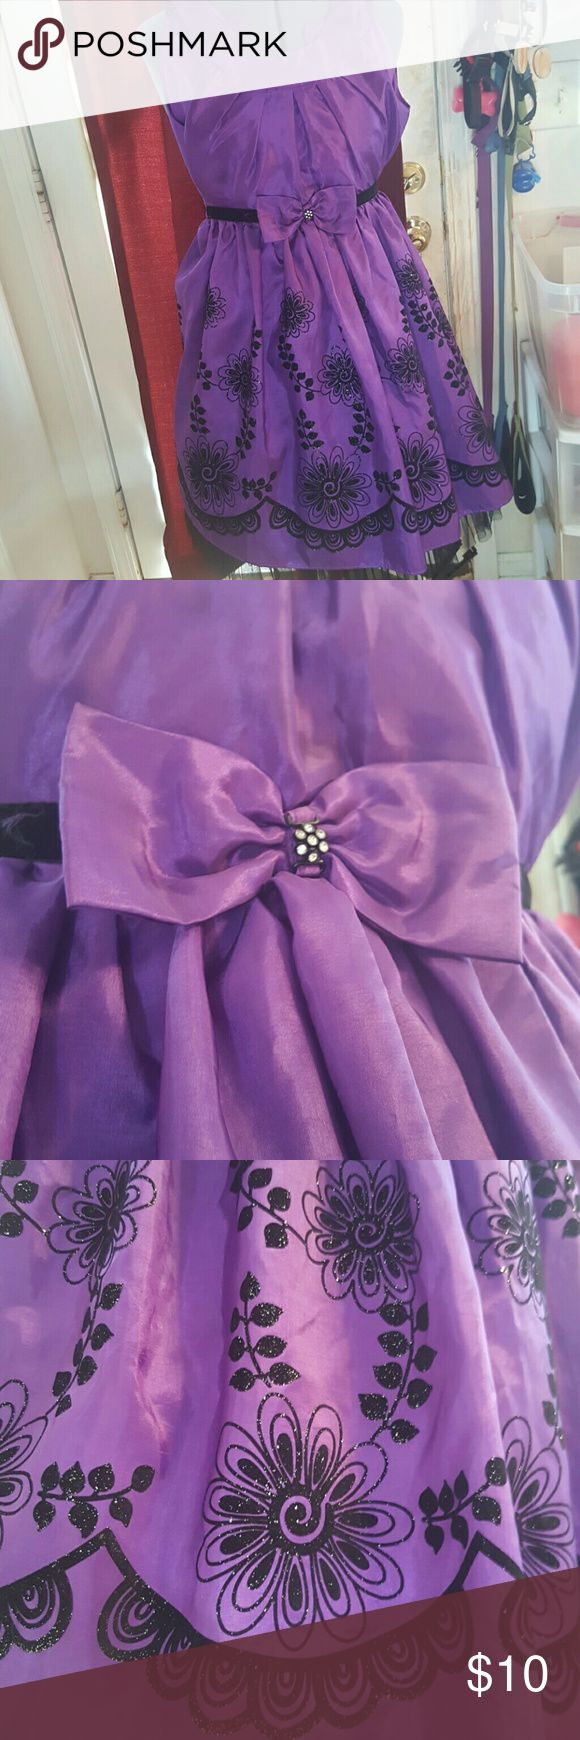 CHILDRENS Purple Formal Dress Girls sz 10 Jona Michelle formal dress, royal purple with black designs. I bought it wanting to make a skirt but never got around to it. Super pretty and I still love it but want someone else to enjoy it. Jona Michelle Dresses Formal